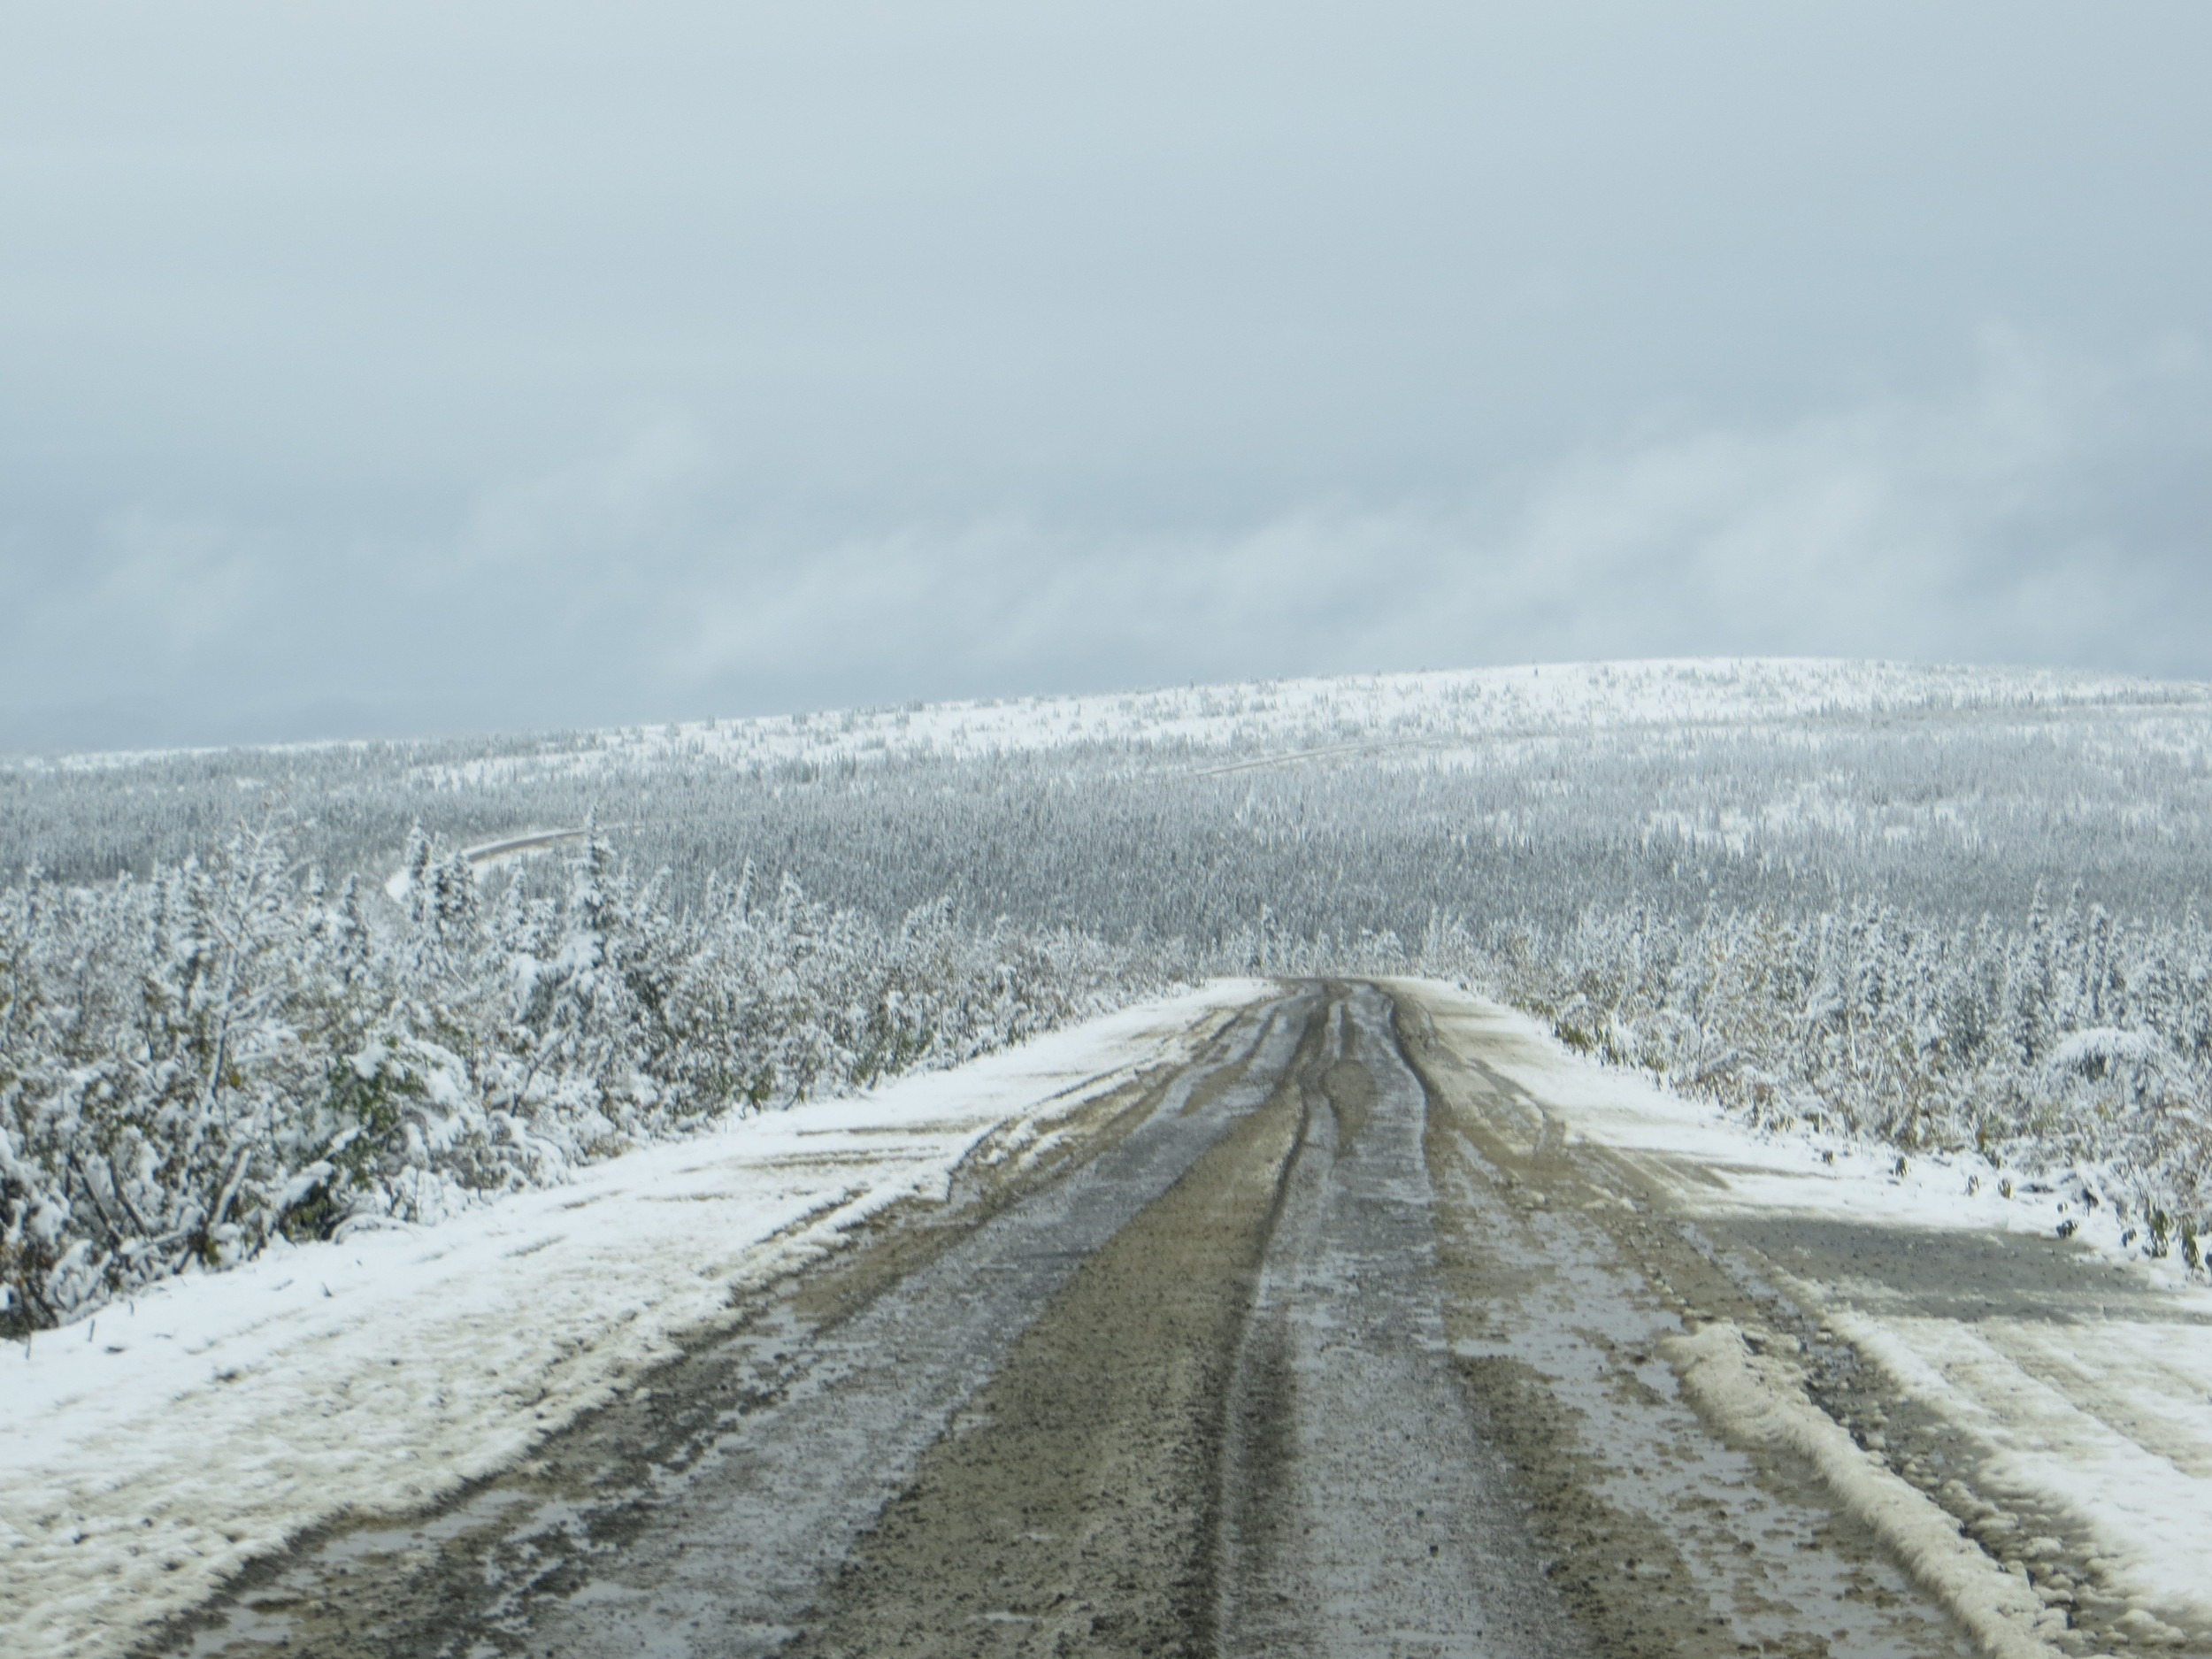 This gives you a pretty good idea of what the roads were like. OK not really - thye were way worse than they look.